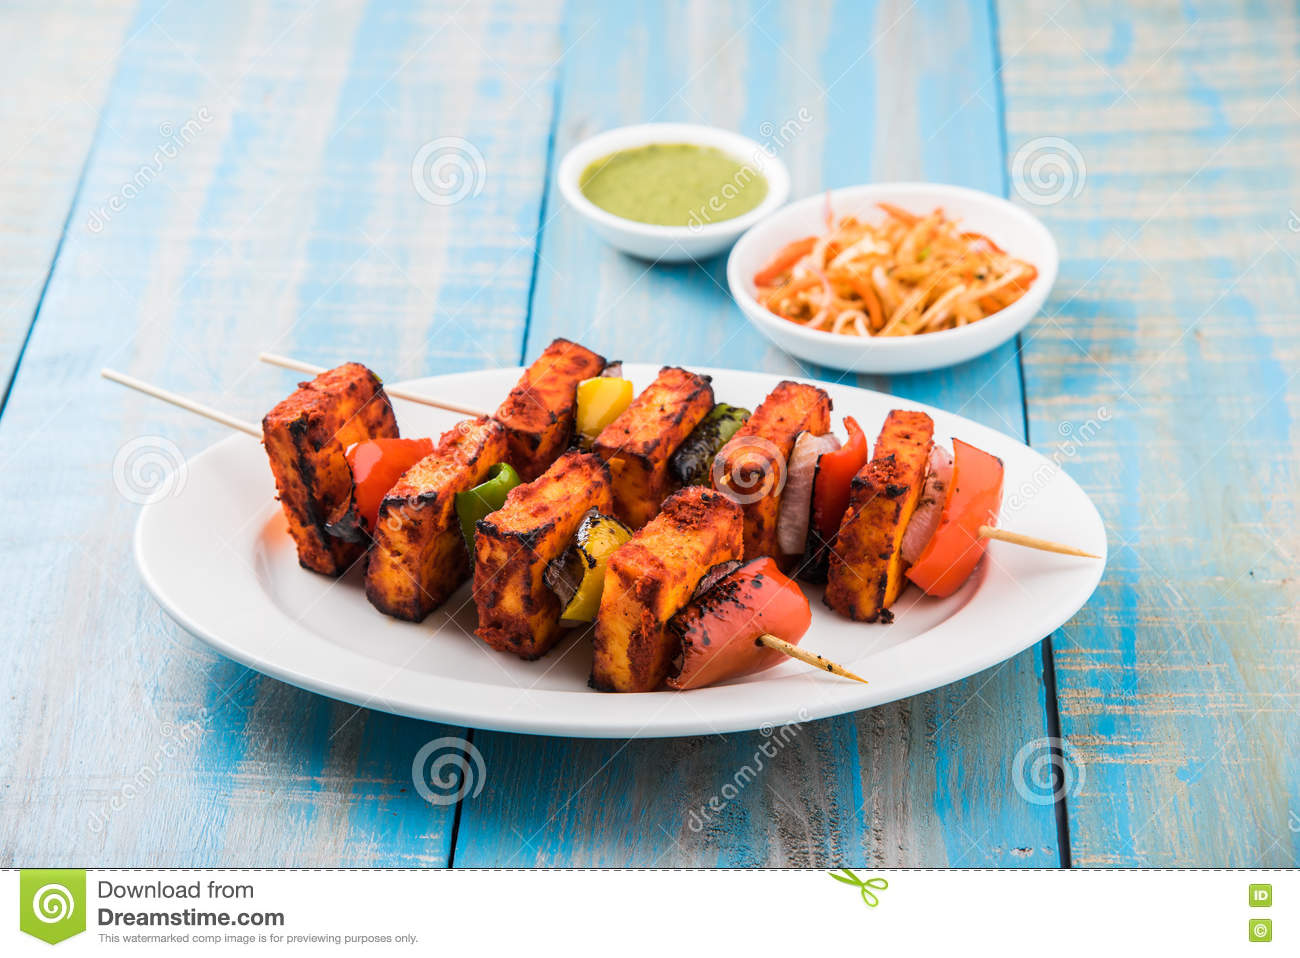 Grilled cottage cheese or also known as Paneer Tikka Kebab or chili paneer or chilli paneer or tandoori paneer in india India, bar